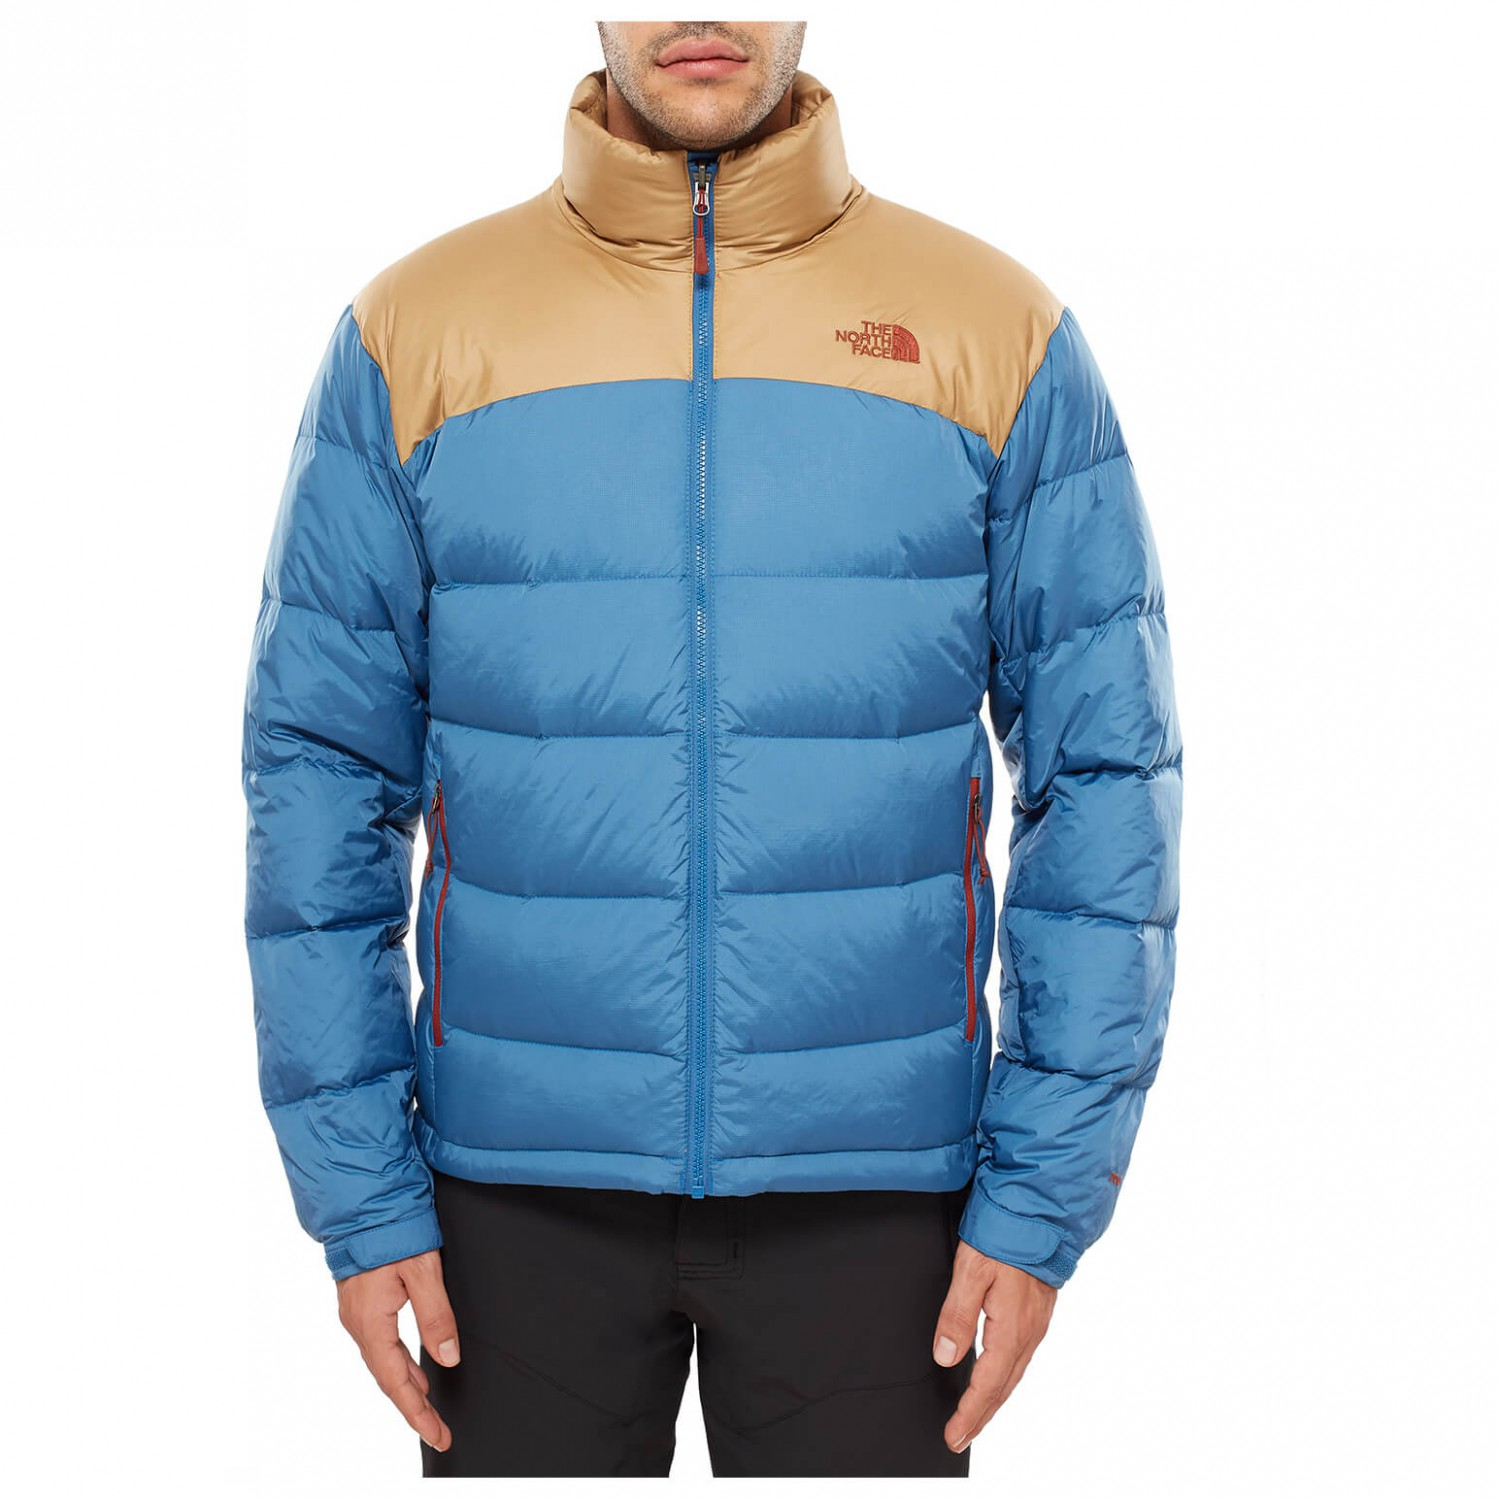 The North Face Nuptse 2 Jacket - Daunenjacke Herren online kaufen ... 10222a4e1